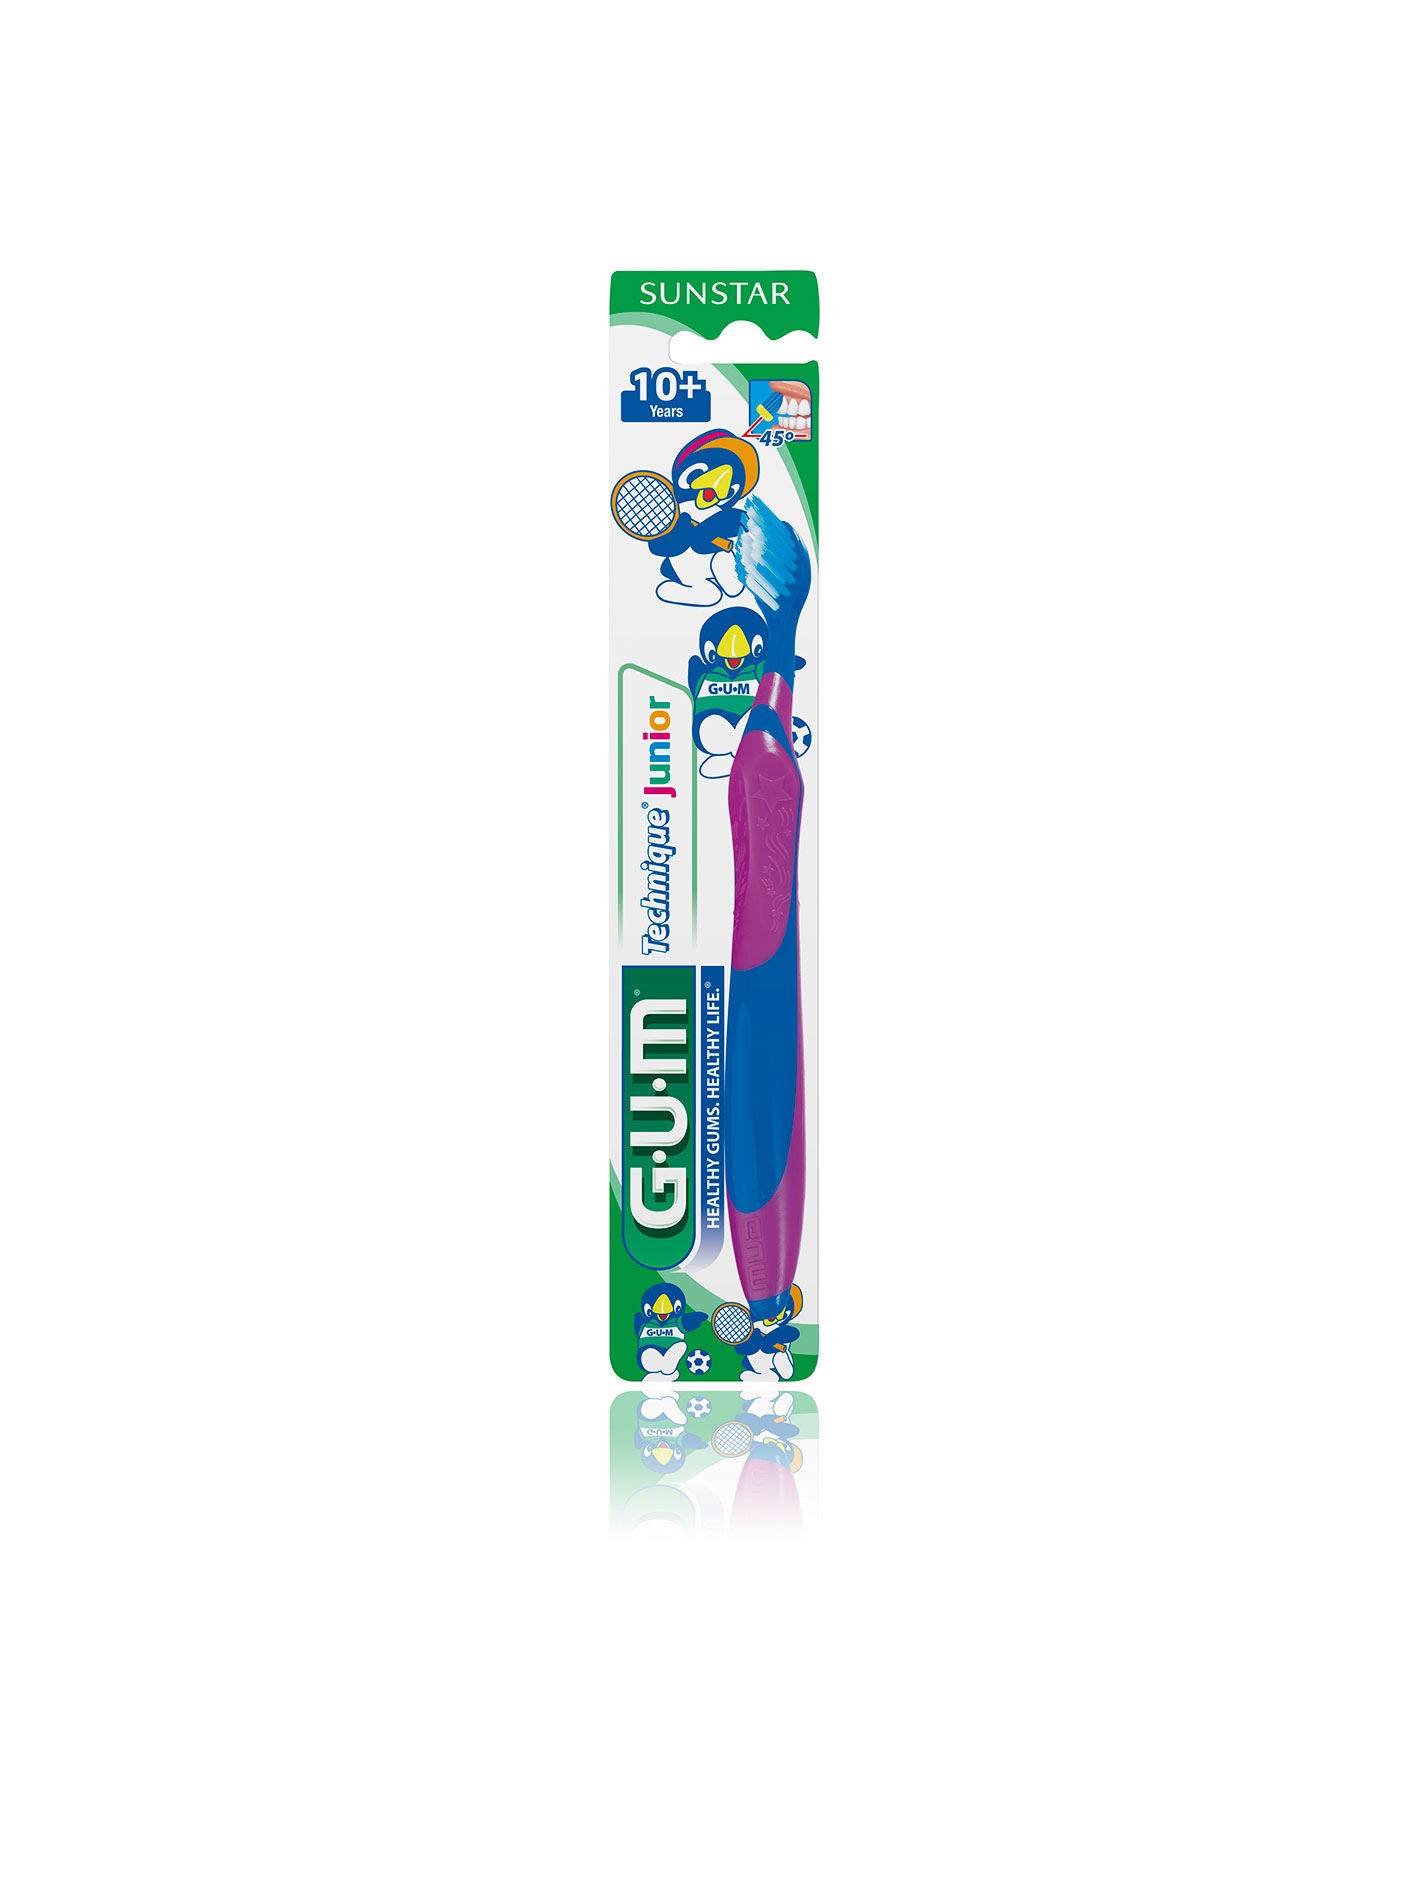 The GUM Technique Junior toothbrush (for children 10 years and older) helps develop a good brushing technique. The non-slip Quad-Grip handle helps guide a child's hand to correctly position the toothbrush